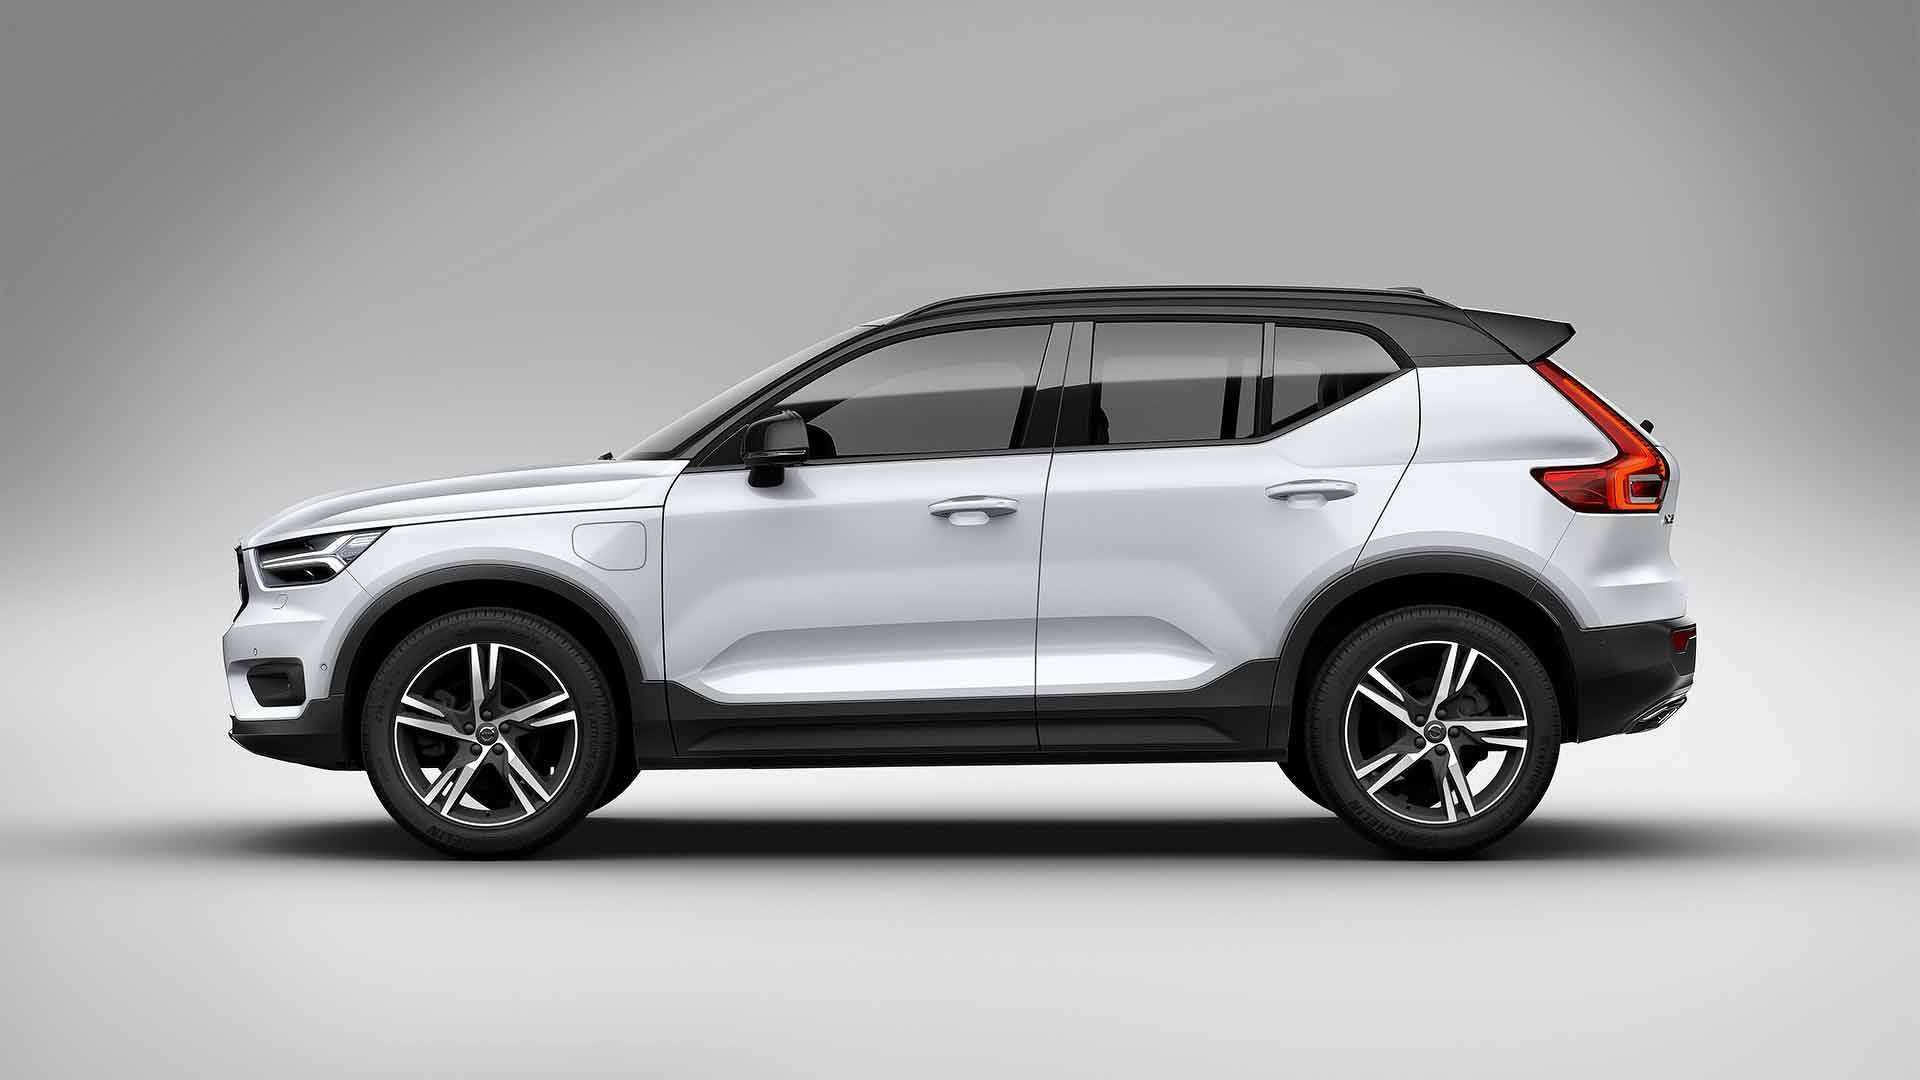 41 All New 2020 Volvo Xc40 Hybrid First Drive by 2020 Volvo Xc40 Hybrid